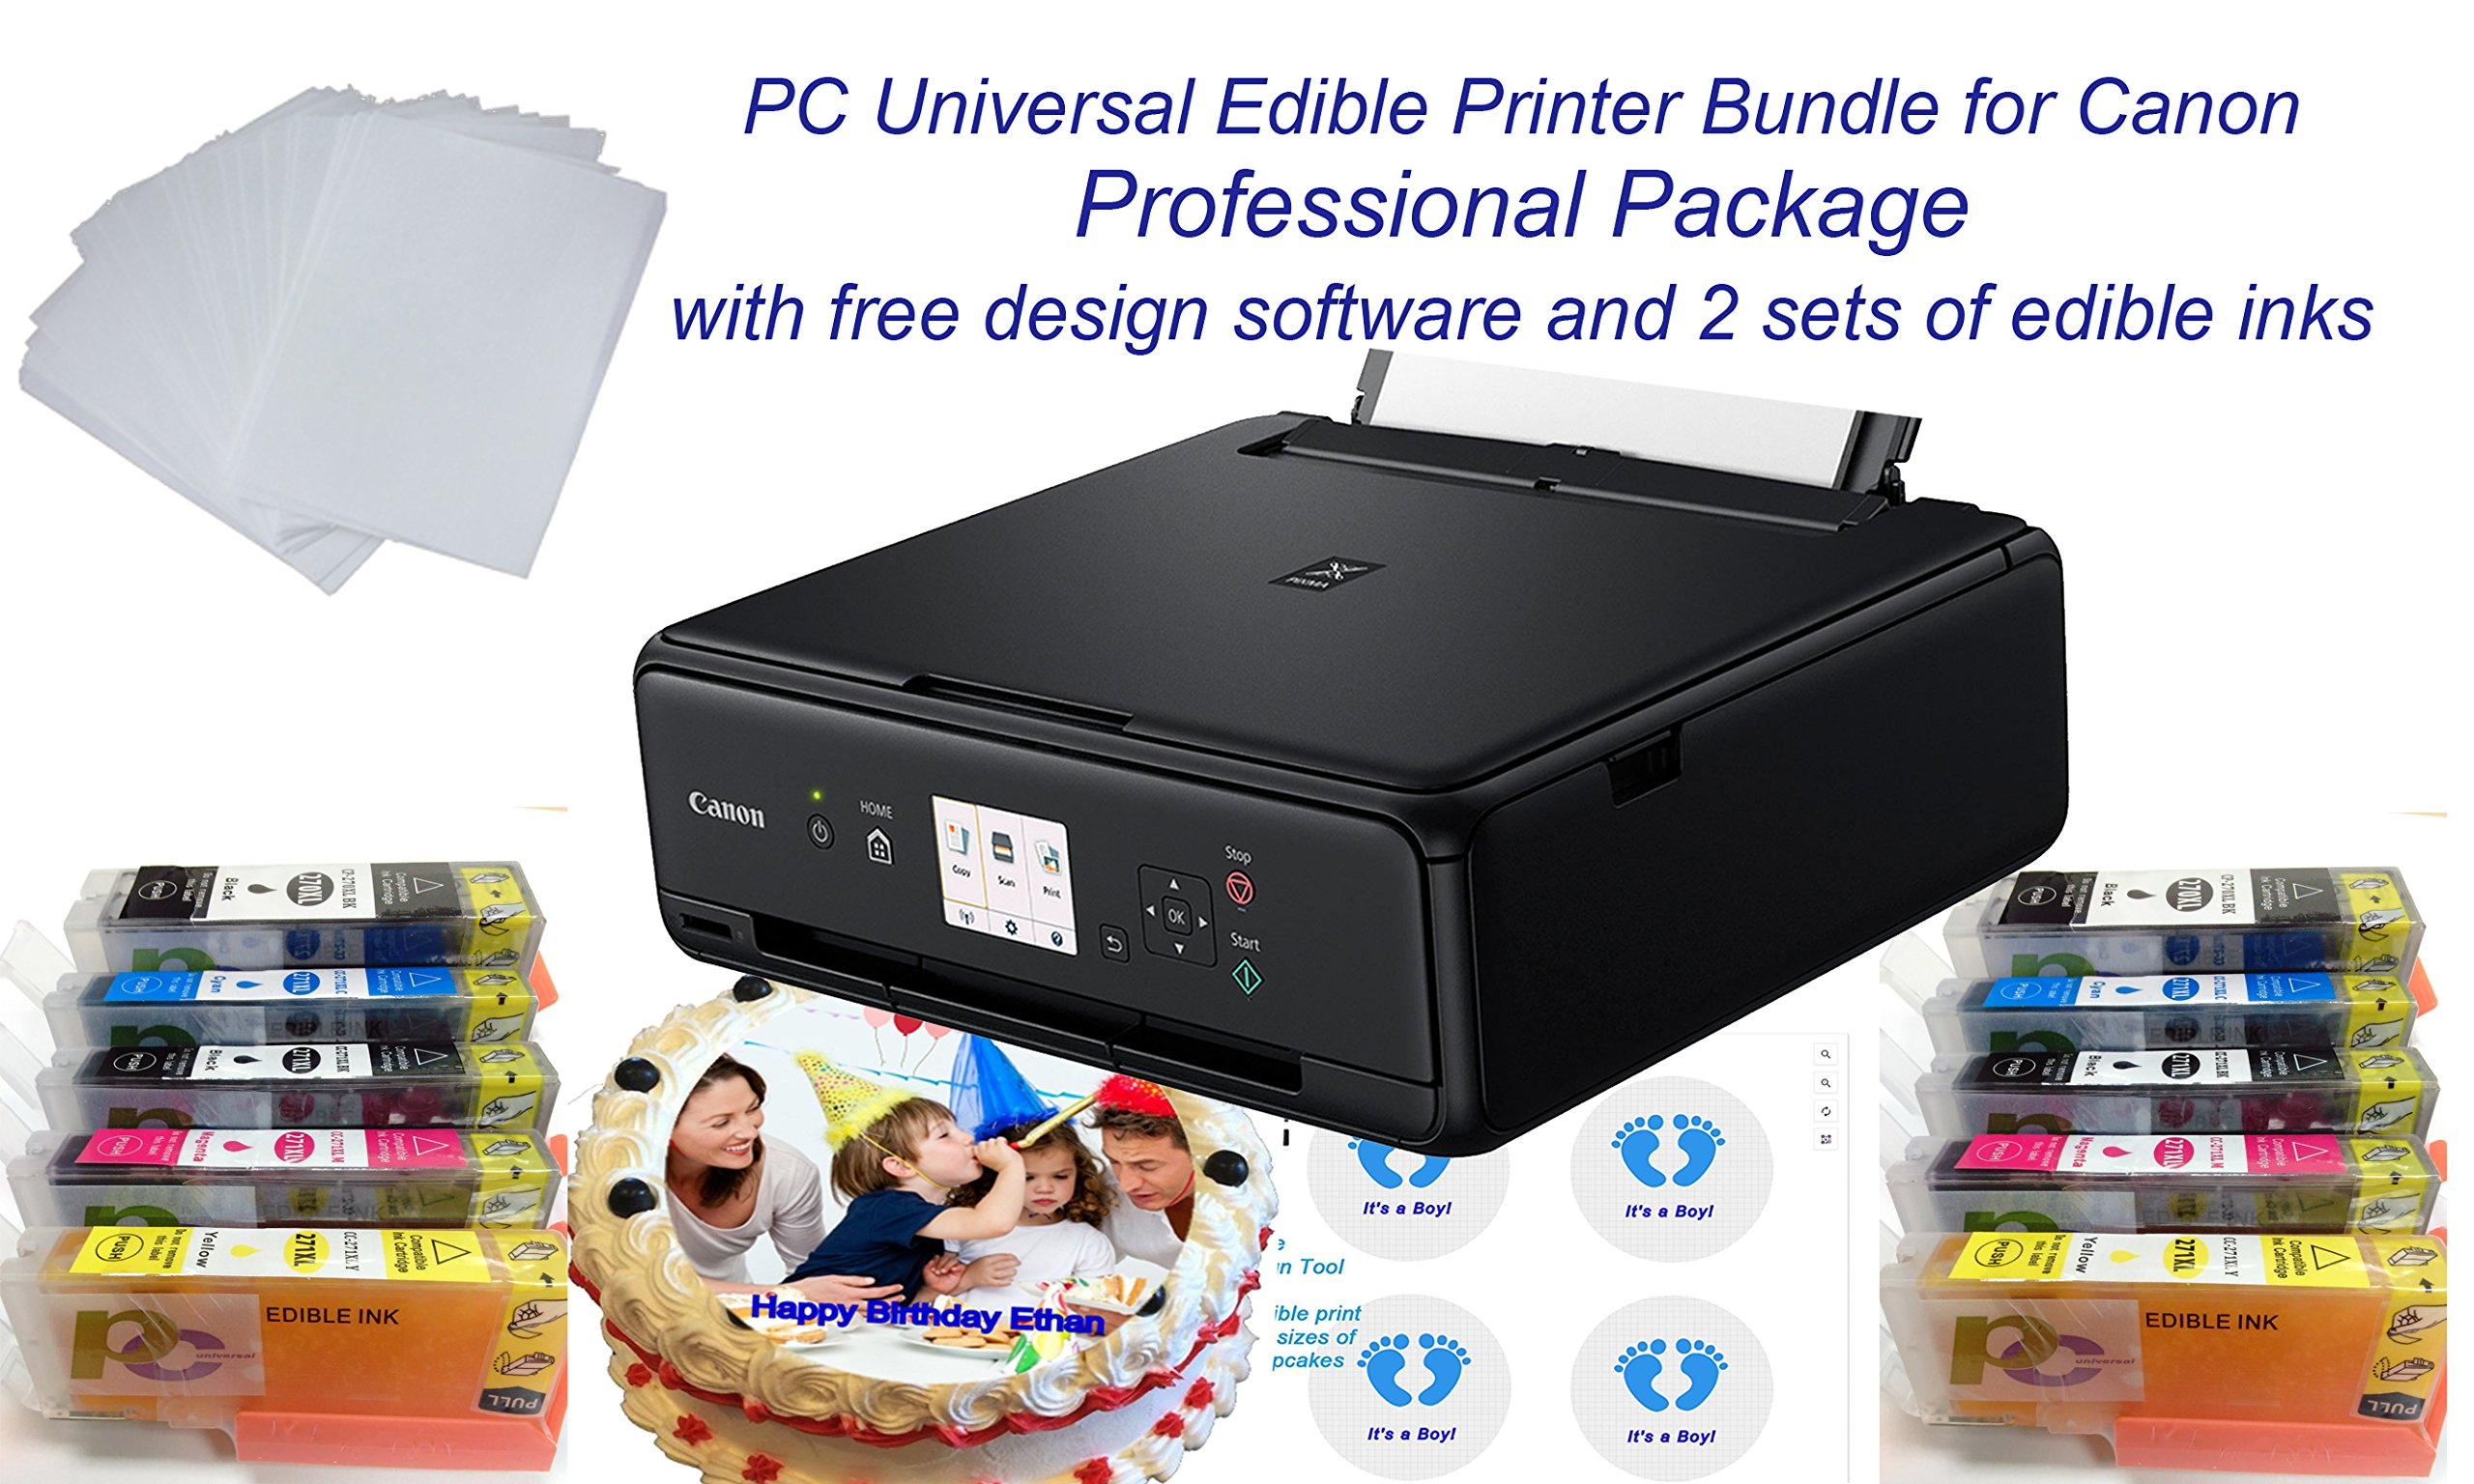 PC Universal Edible Printer Bundle- Professional Package- with 2 Sets of Edible Inks + 40 Edible Wafer Sheets+ Bakery Design Software- Professional Edible Cake Printer Easy to Use